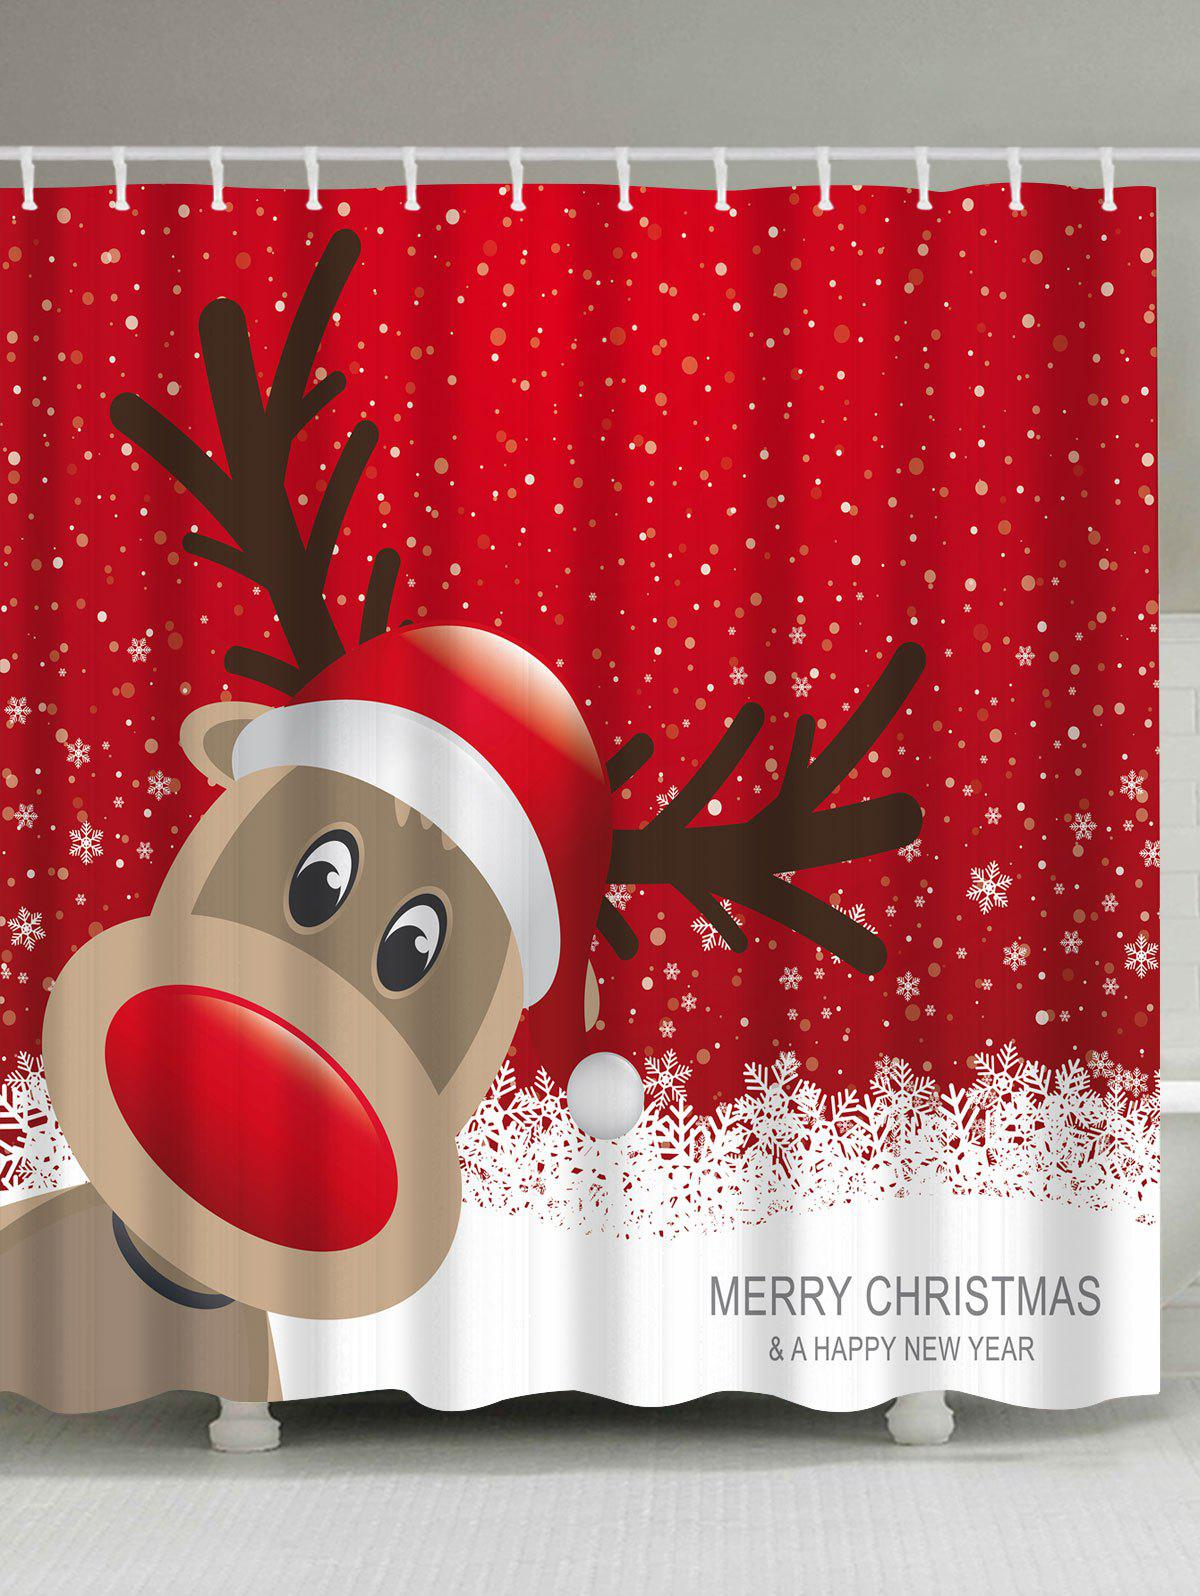 Waterproof Christmas Elk Bathroom Cartoon CurtainHOME<br><br>Size: M; Color: RED; Products Type: Shower Curtains; Materials: Polyester; Pattern: Elk; Style: Festival; Package Contents: 1 x Shower Curtain 1 x Hooks (Set);